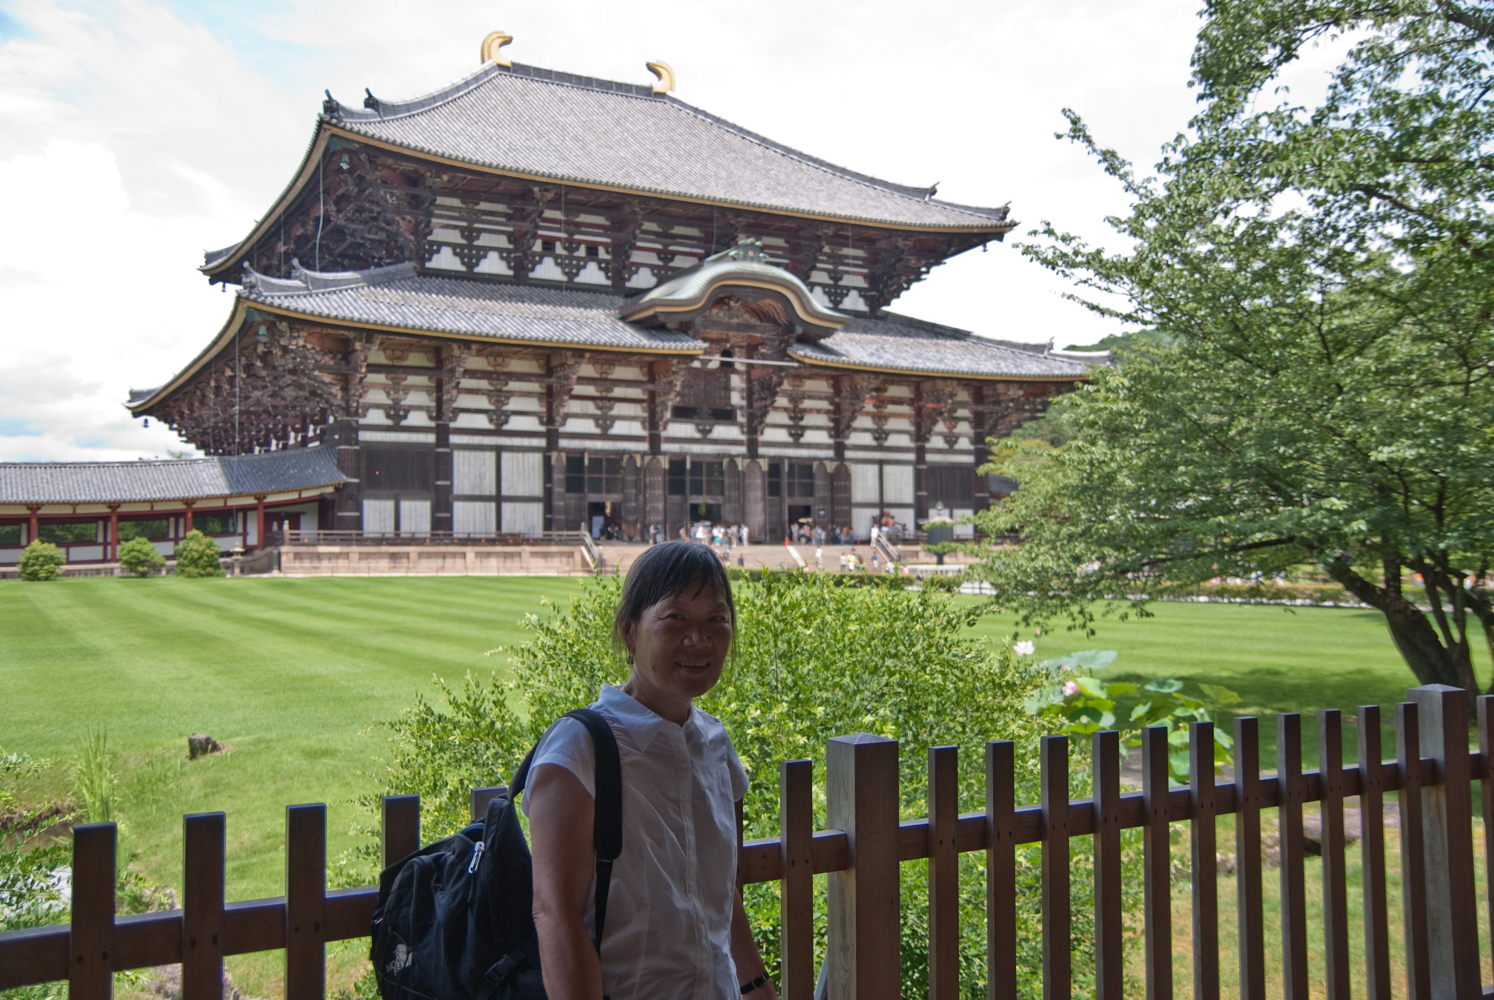 Todai-ji: this large temple contains the largest bronze statue of Buddha . Until 1998 it was the largest wooden building in the world.